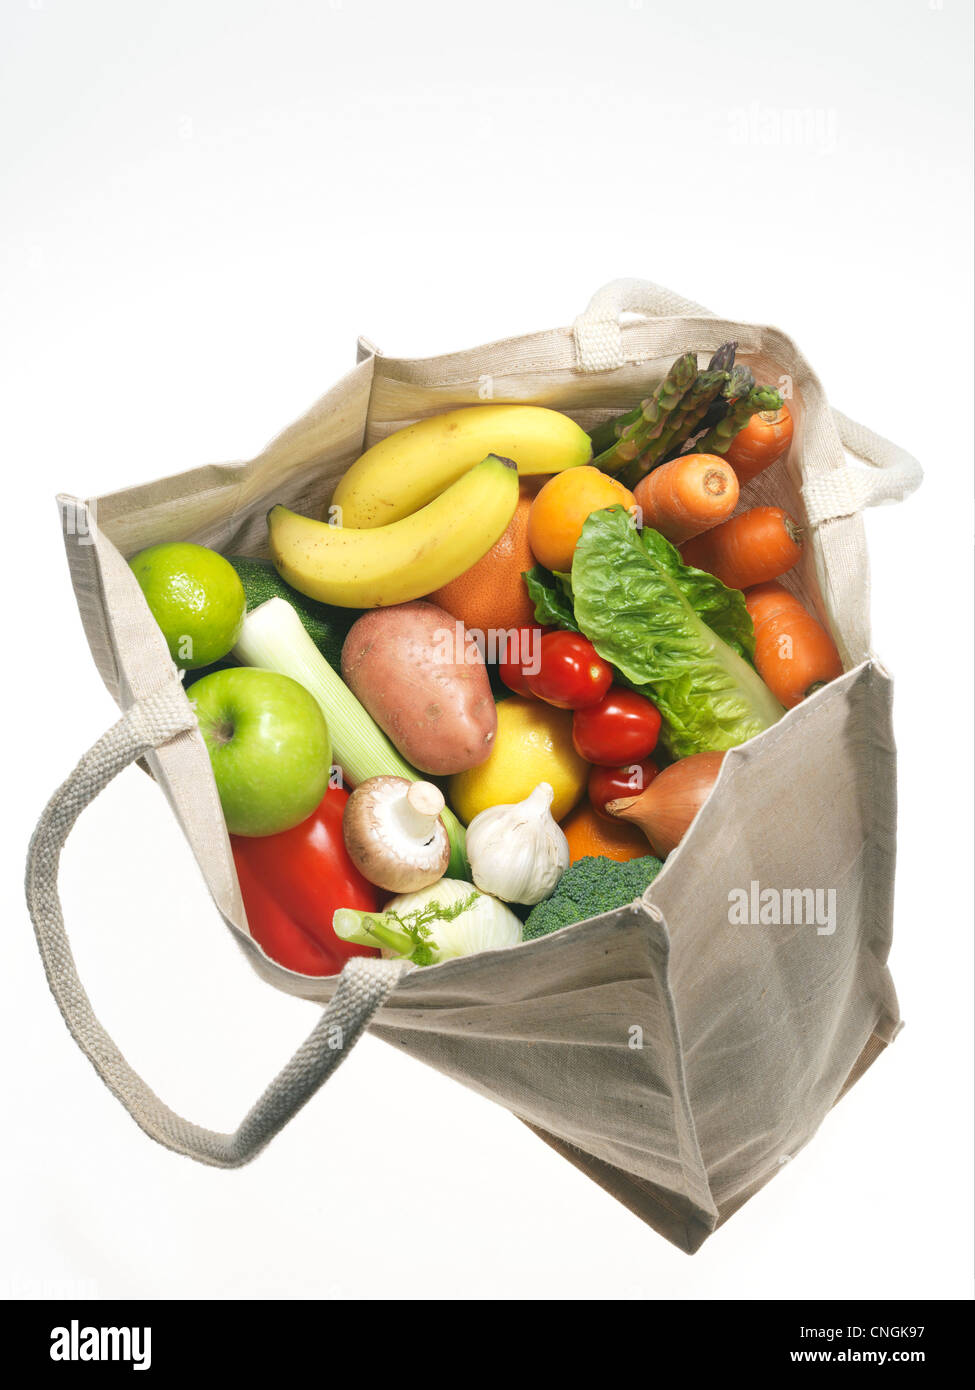 Fruit and vegetables - Stock Image